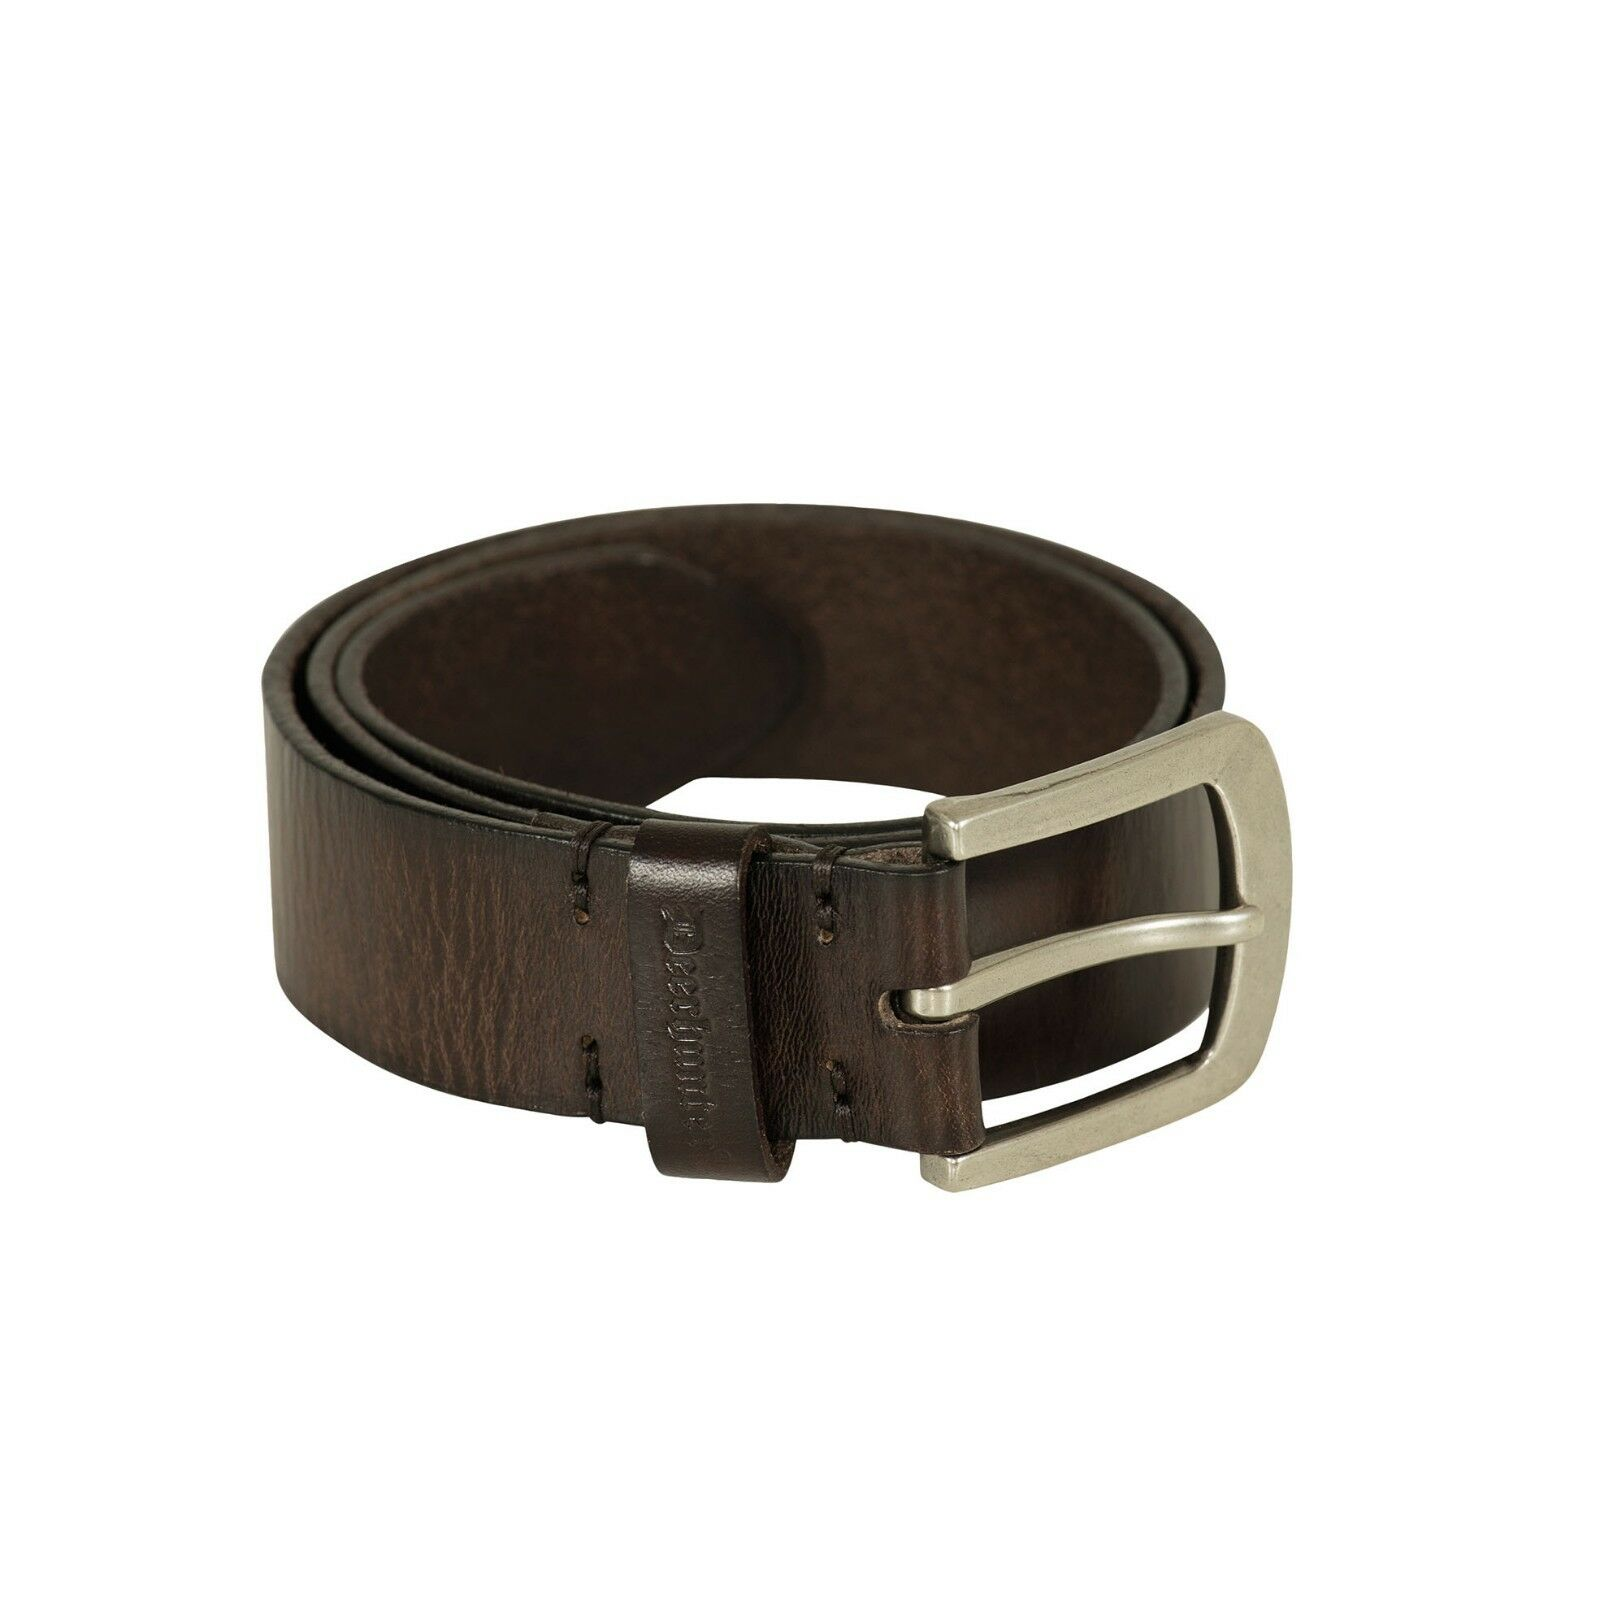 Deerhunter Leather Belt Dark Brown Men's Country Hunting Shooting RRP .99